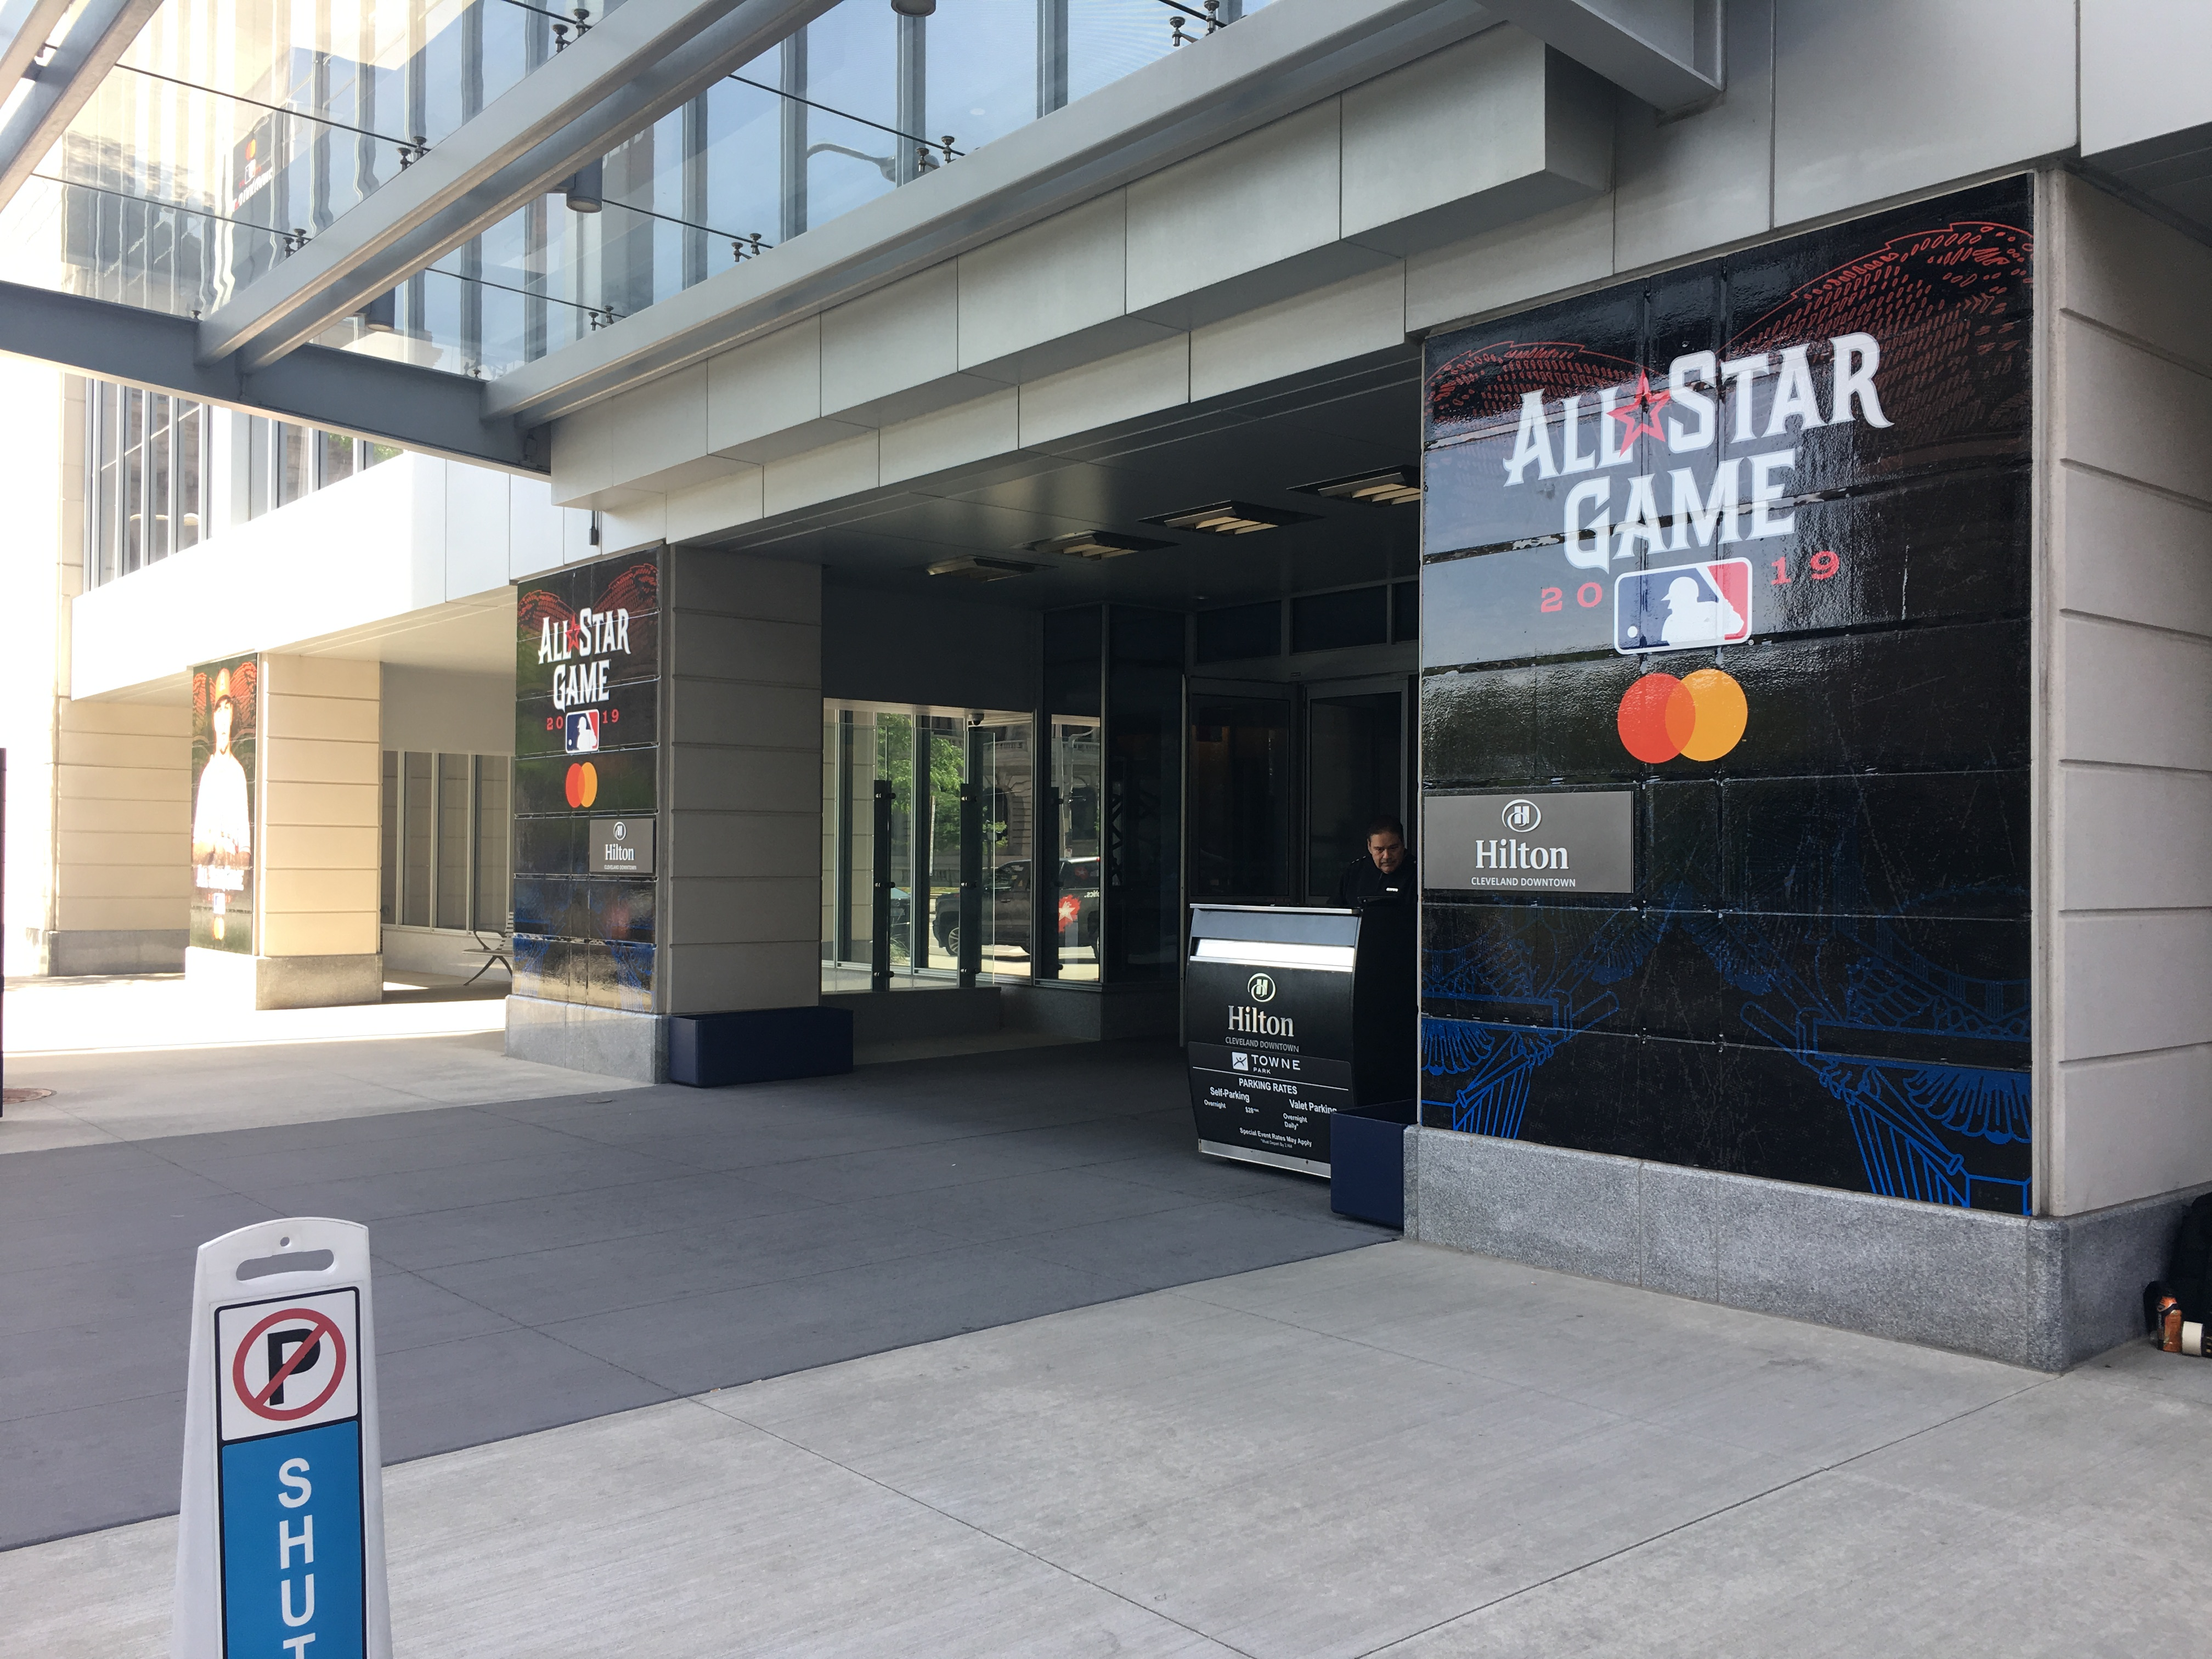 all-star game outdoor wall graphics